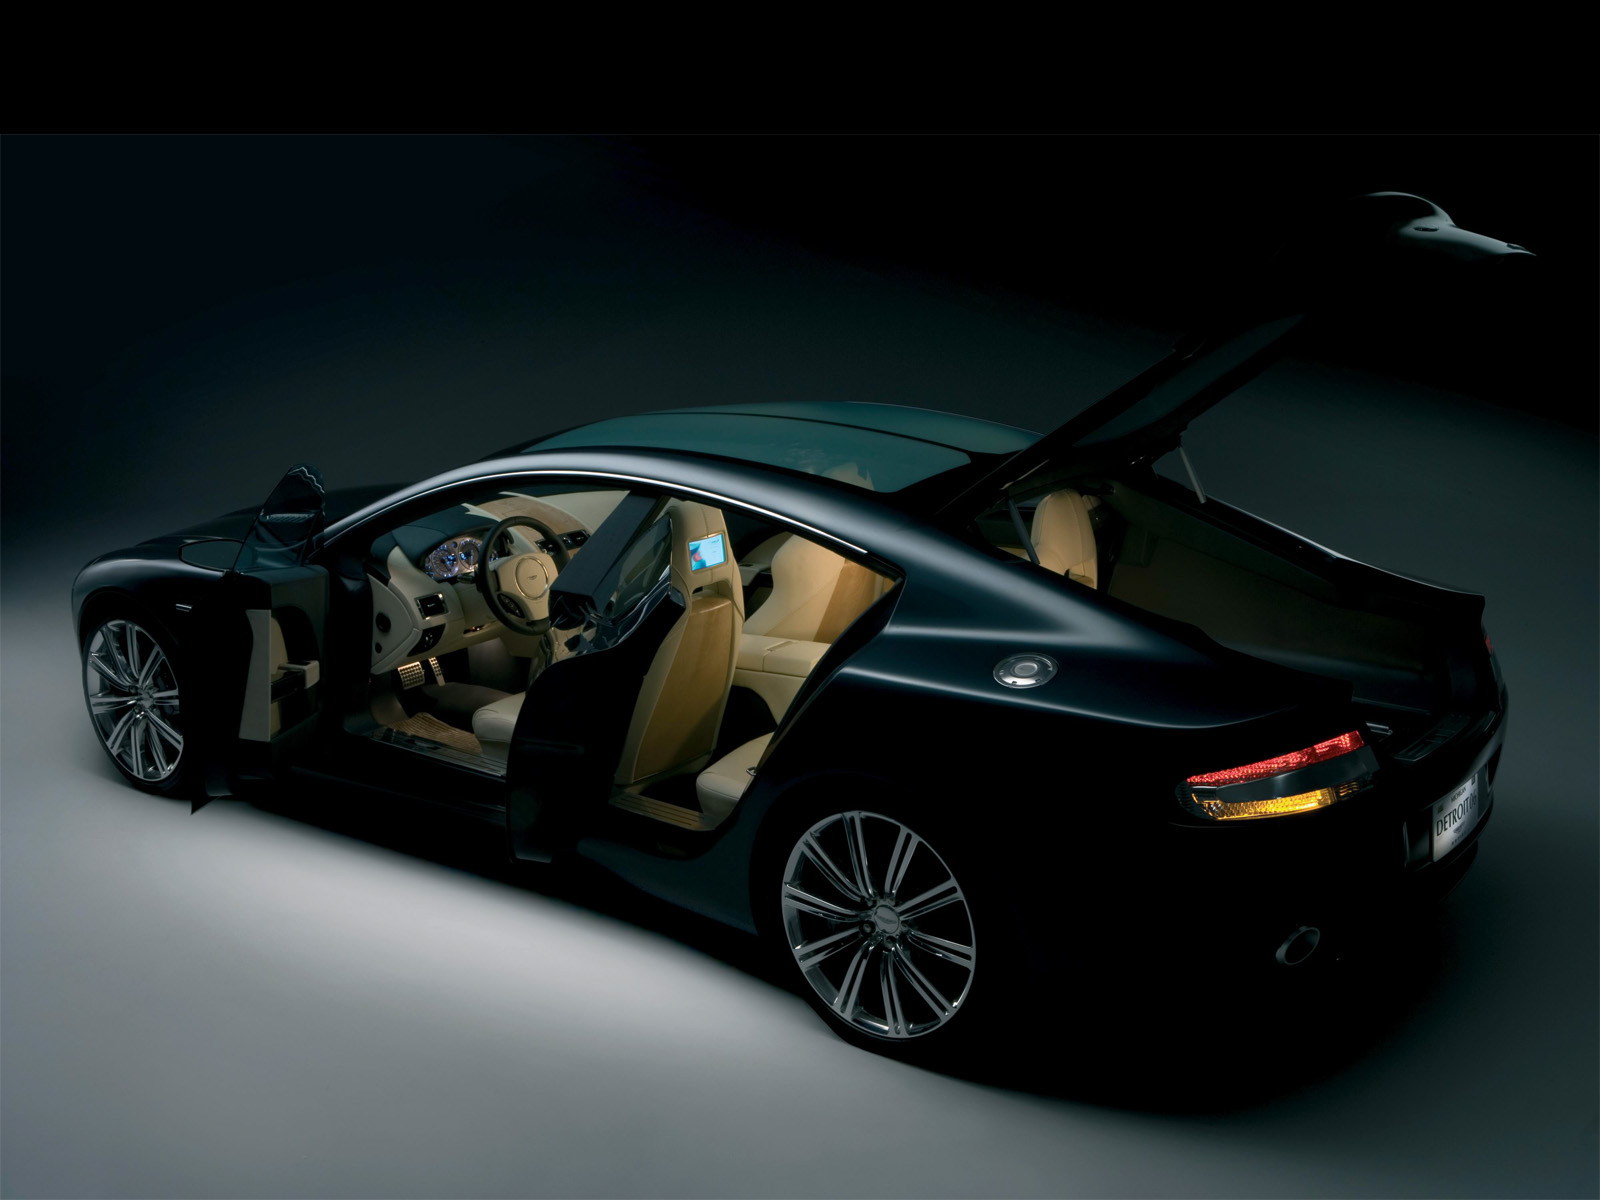 aston martin rapide images world of cars. Black Bedroom Furniture Sets. Home Design Ideas